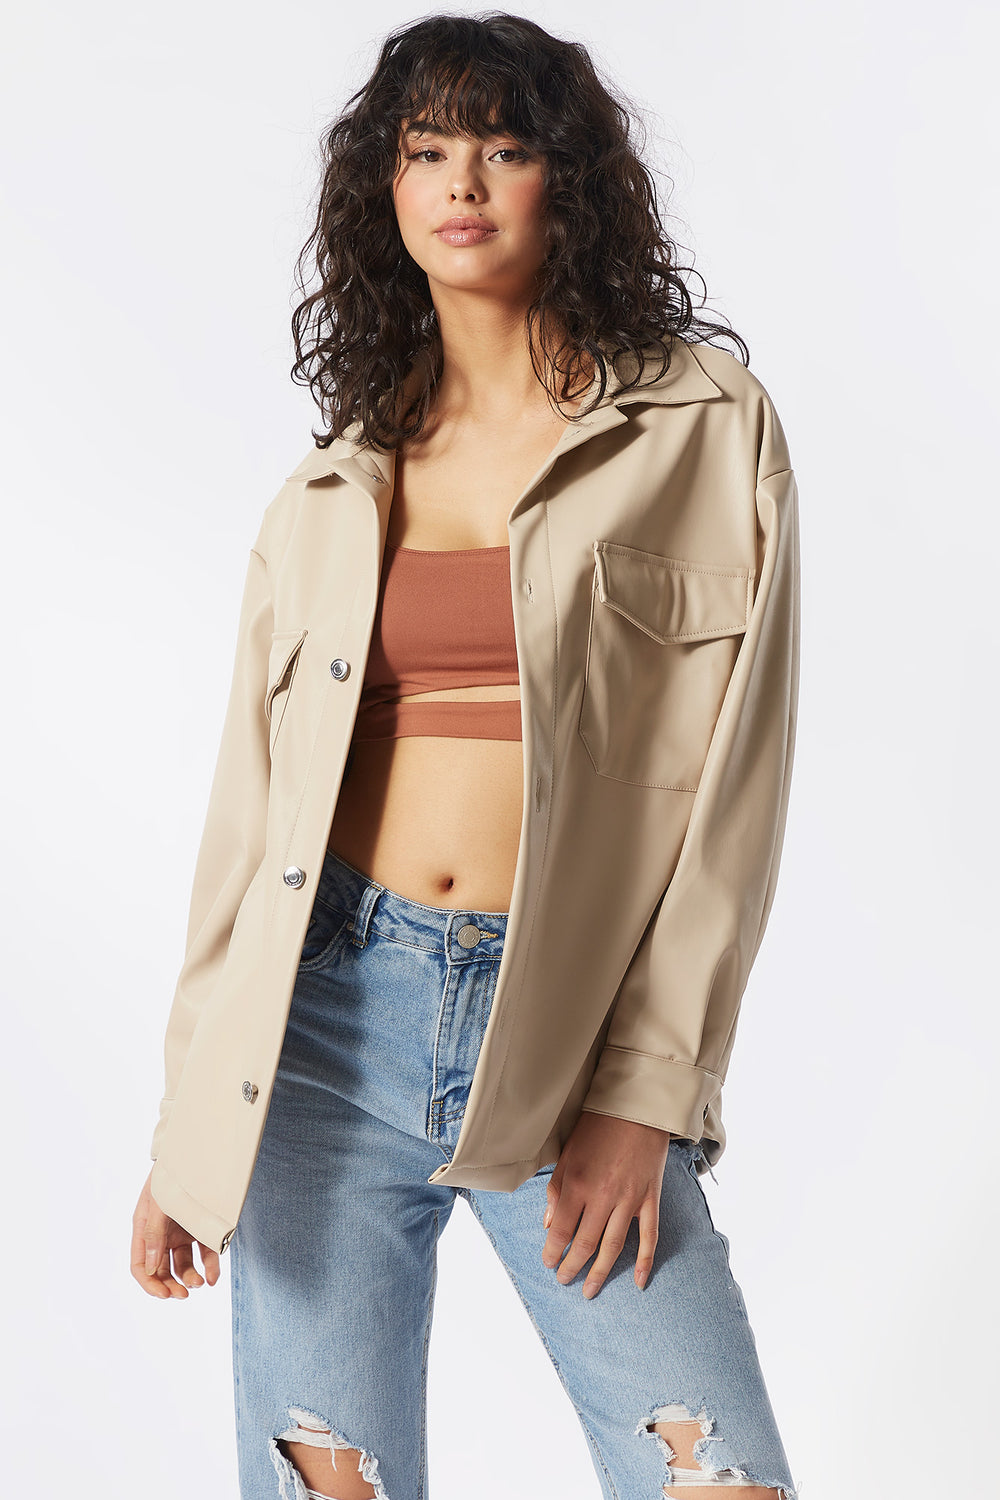 Faux-Leather Button-Up Shirt Jacket Tan